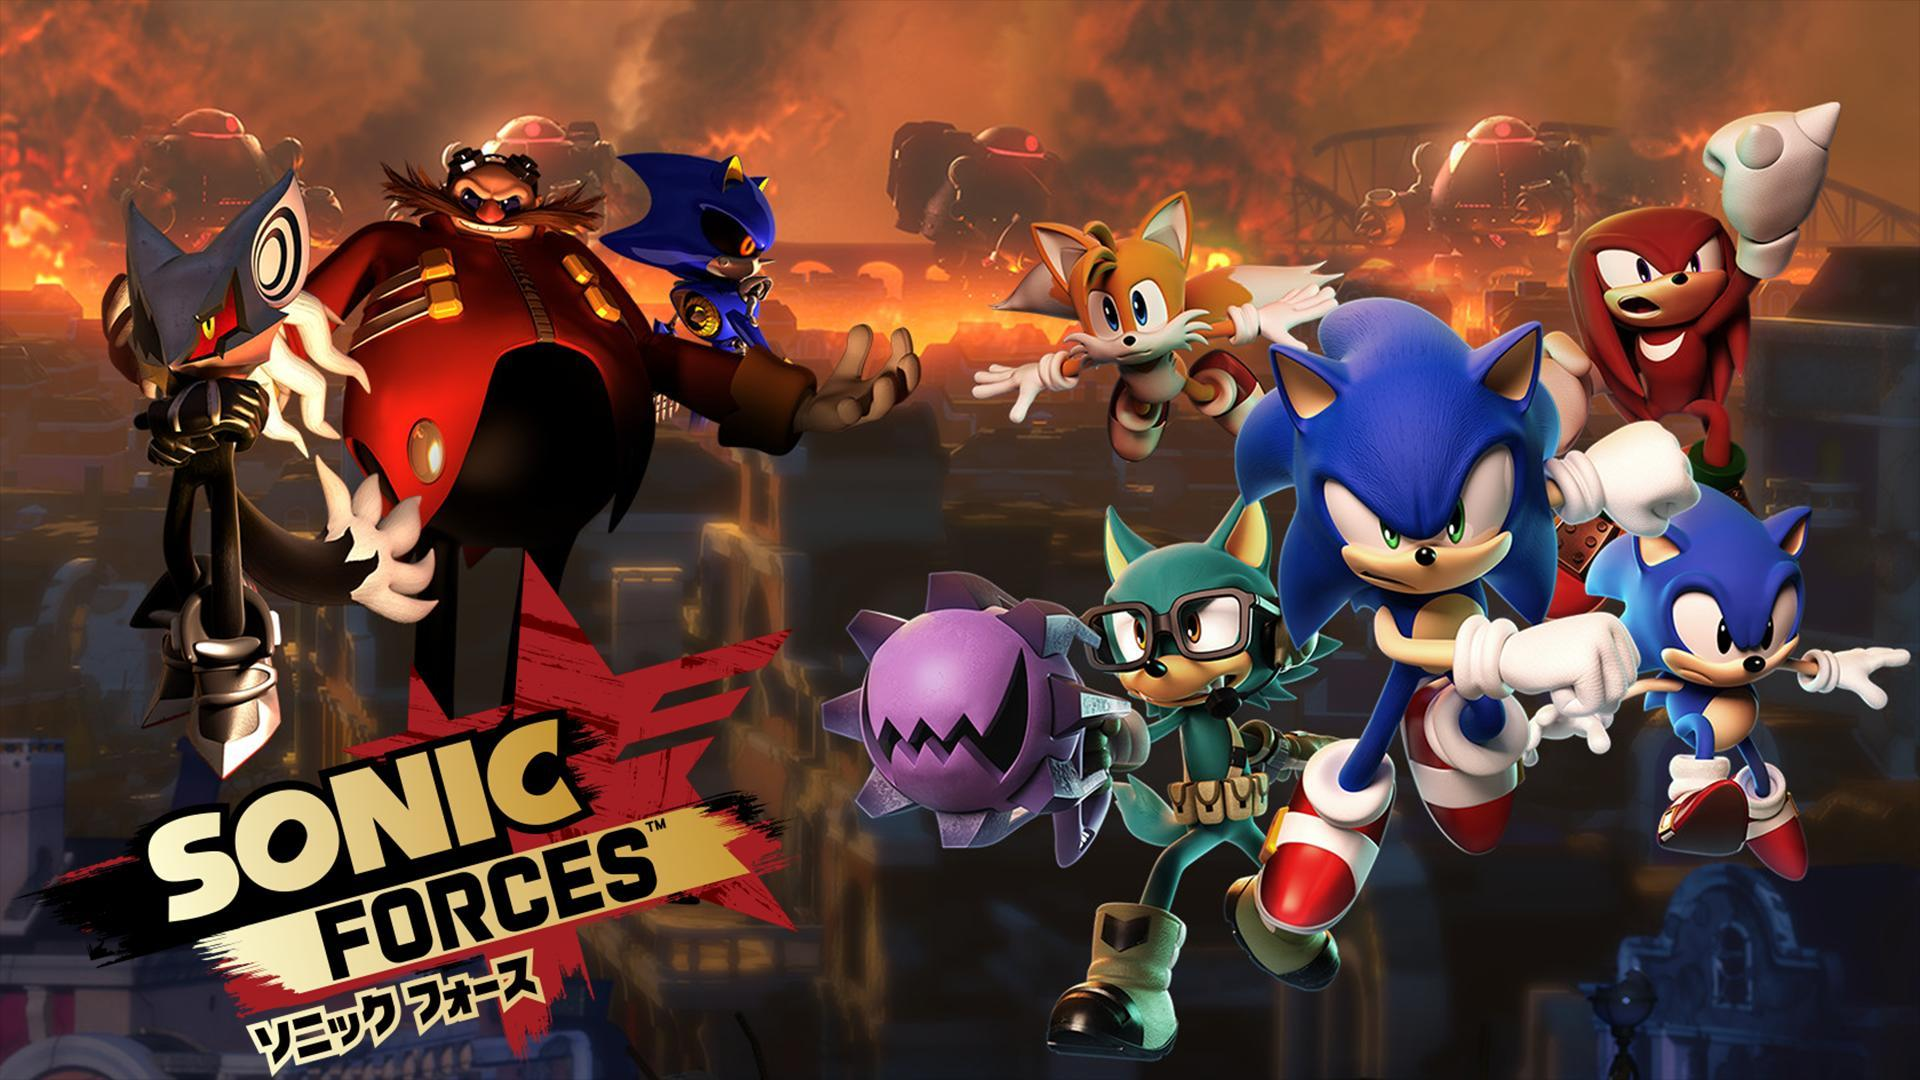 Sonic Forces Wallpapers Wallpaper Cave